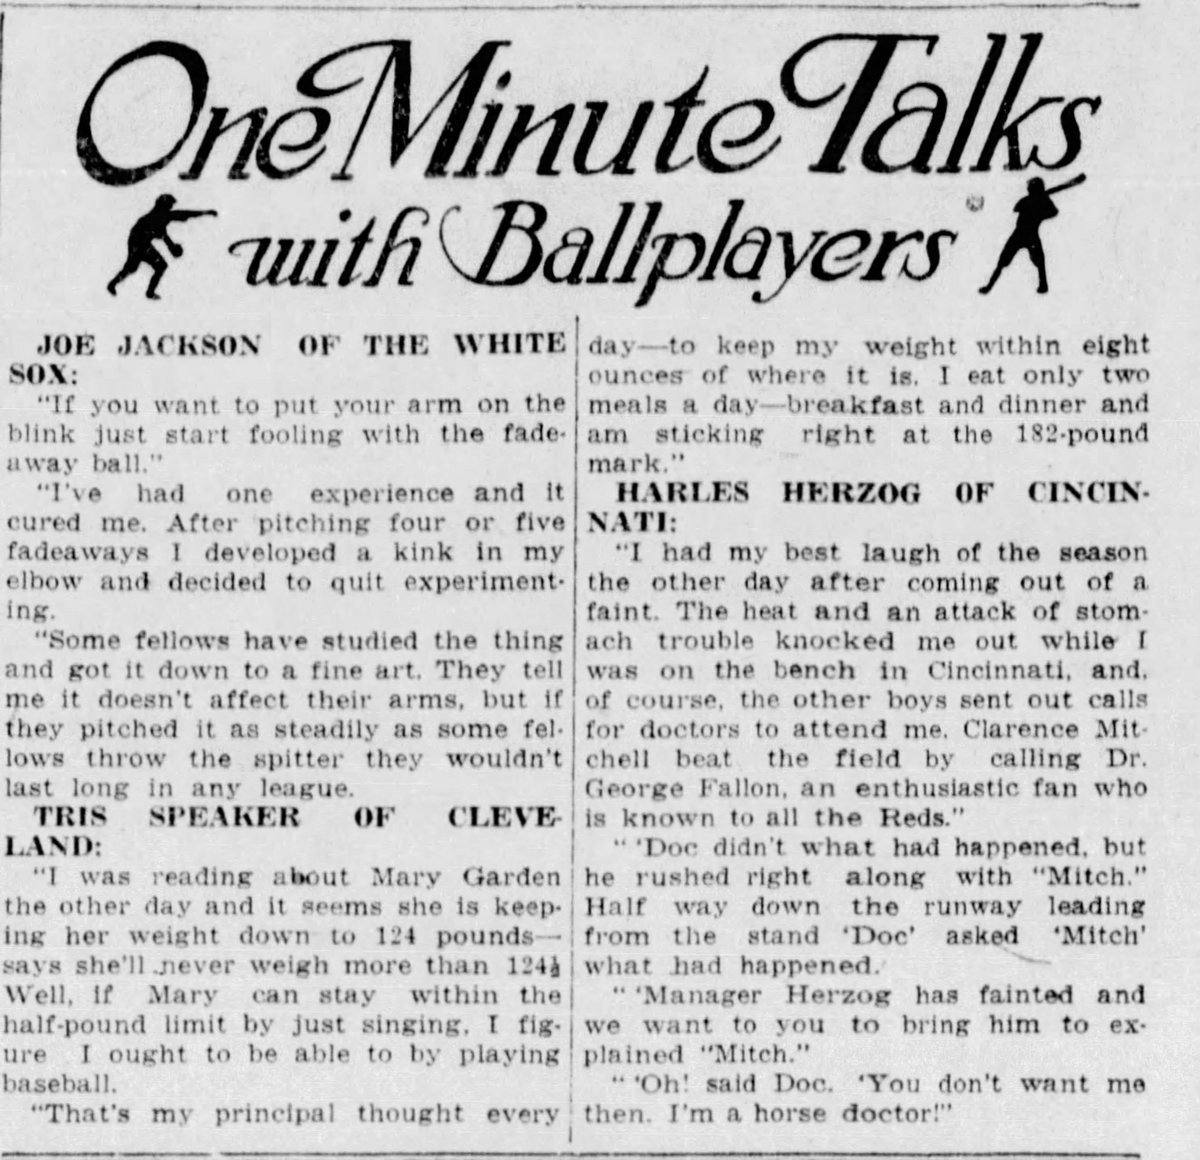 NOON NEWSCLIP: 1916: #MLB stars of the day discuss random topics. #ShoelessJoeJackson advises against the fadeaway pitch, Tris Speaker discusses his diet and his motivation behind it and Charles Herzog has an encounter with a horse doctor. Fantastic. #WhiteSox @Indians @Reds https://t.co/y9yCNDgpmt